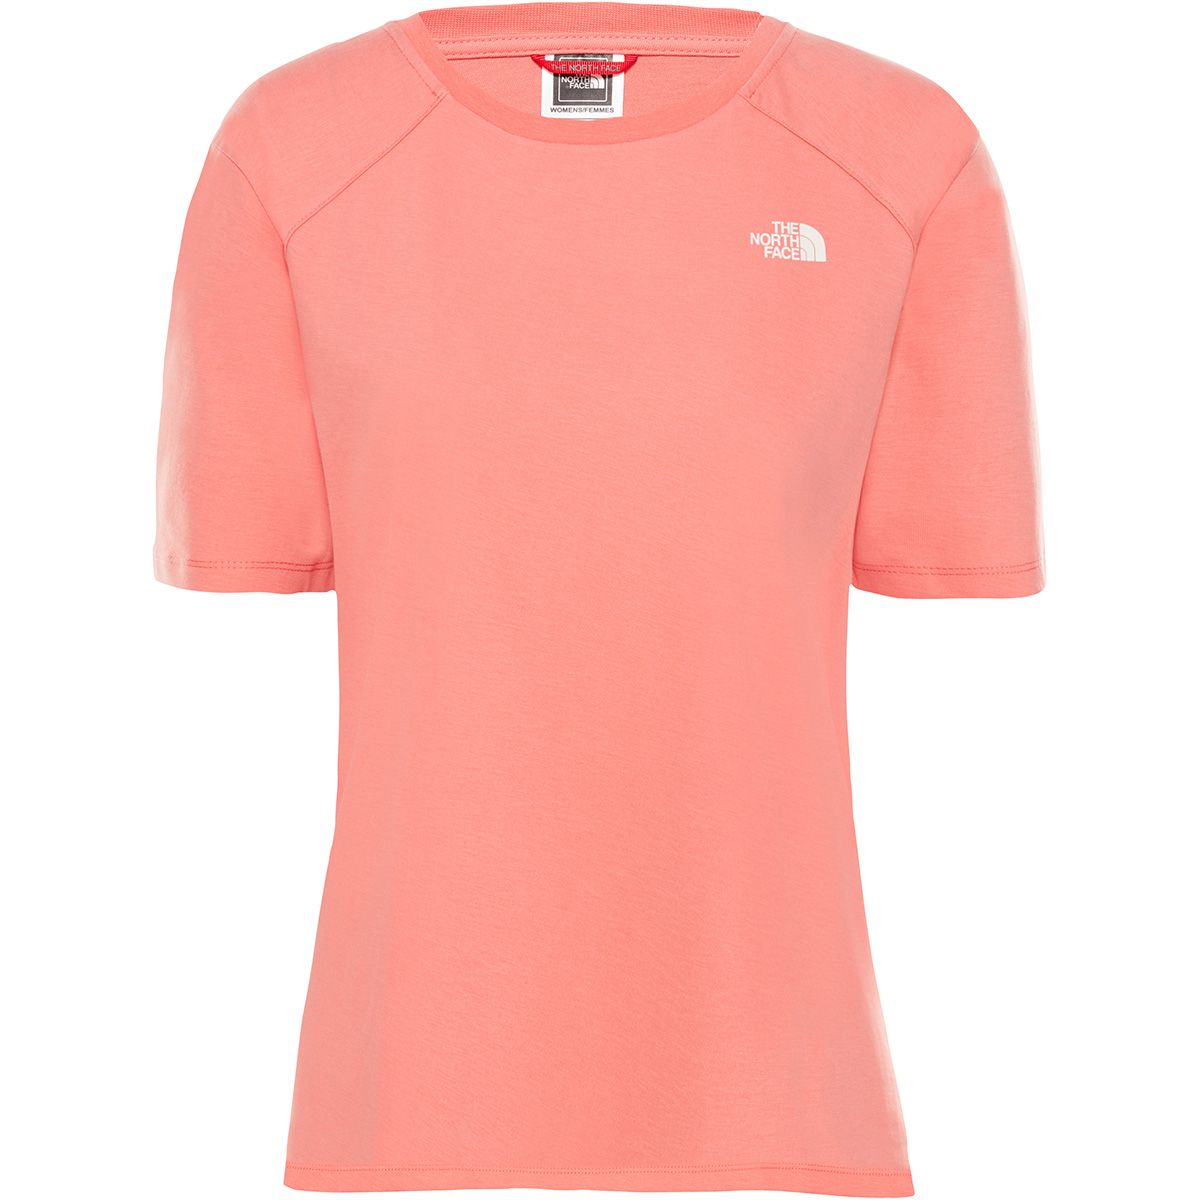 The North Face Damen Ss Prem Si Dom T-Shirt (Größe XS, Rot) | T-Shirts Freizeit > Damen